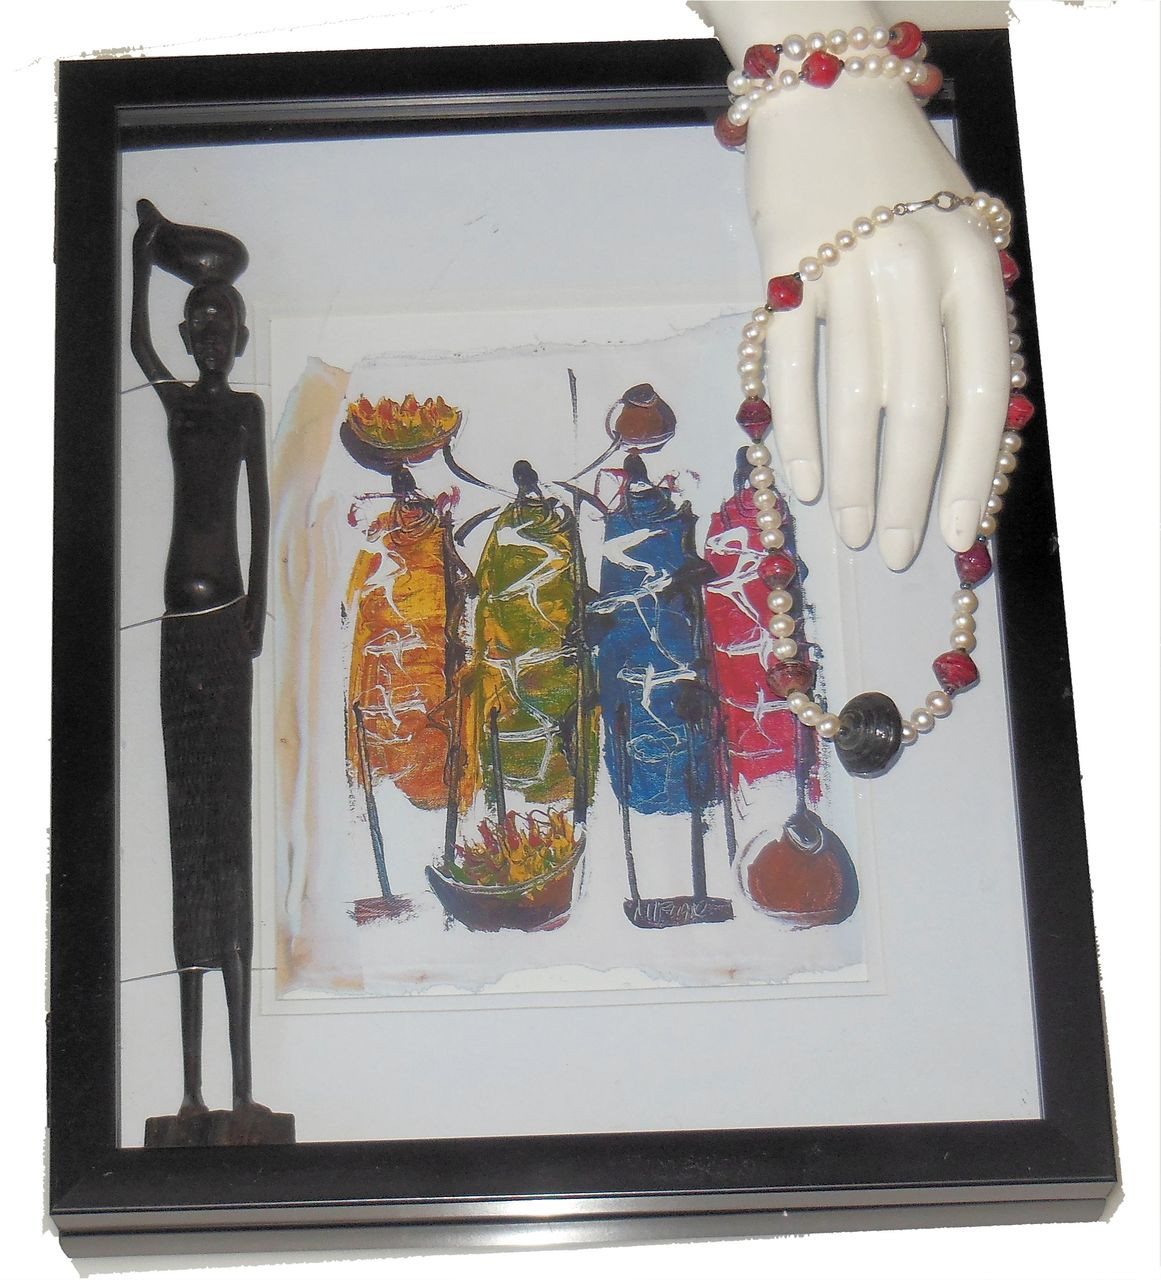 Crazy Mixed Media! Maasai Warriors Sculpture & Print in Shadow Box + Necklace/Bracelet in African Paper beads & Chinese pearls